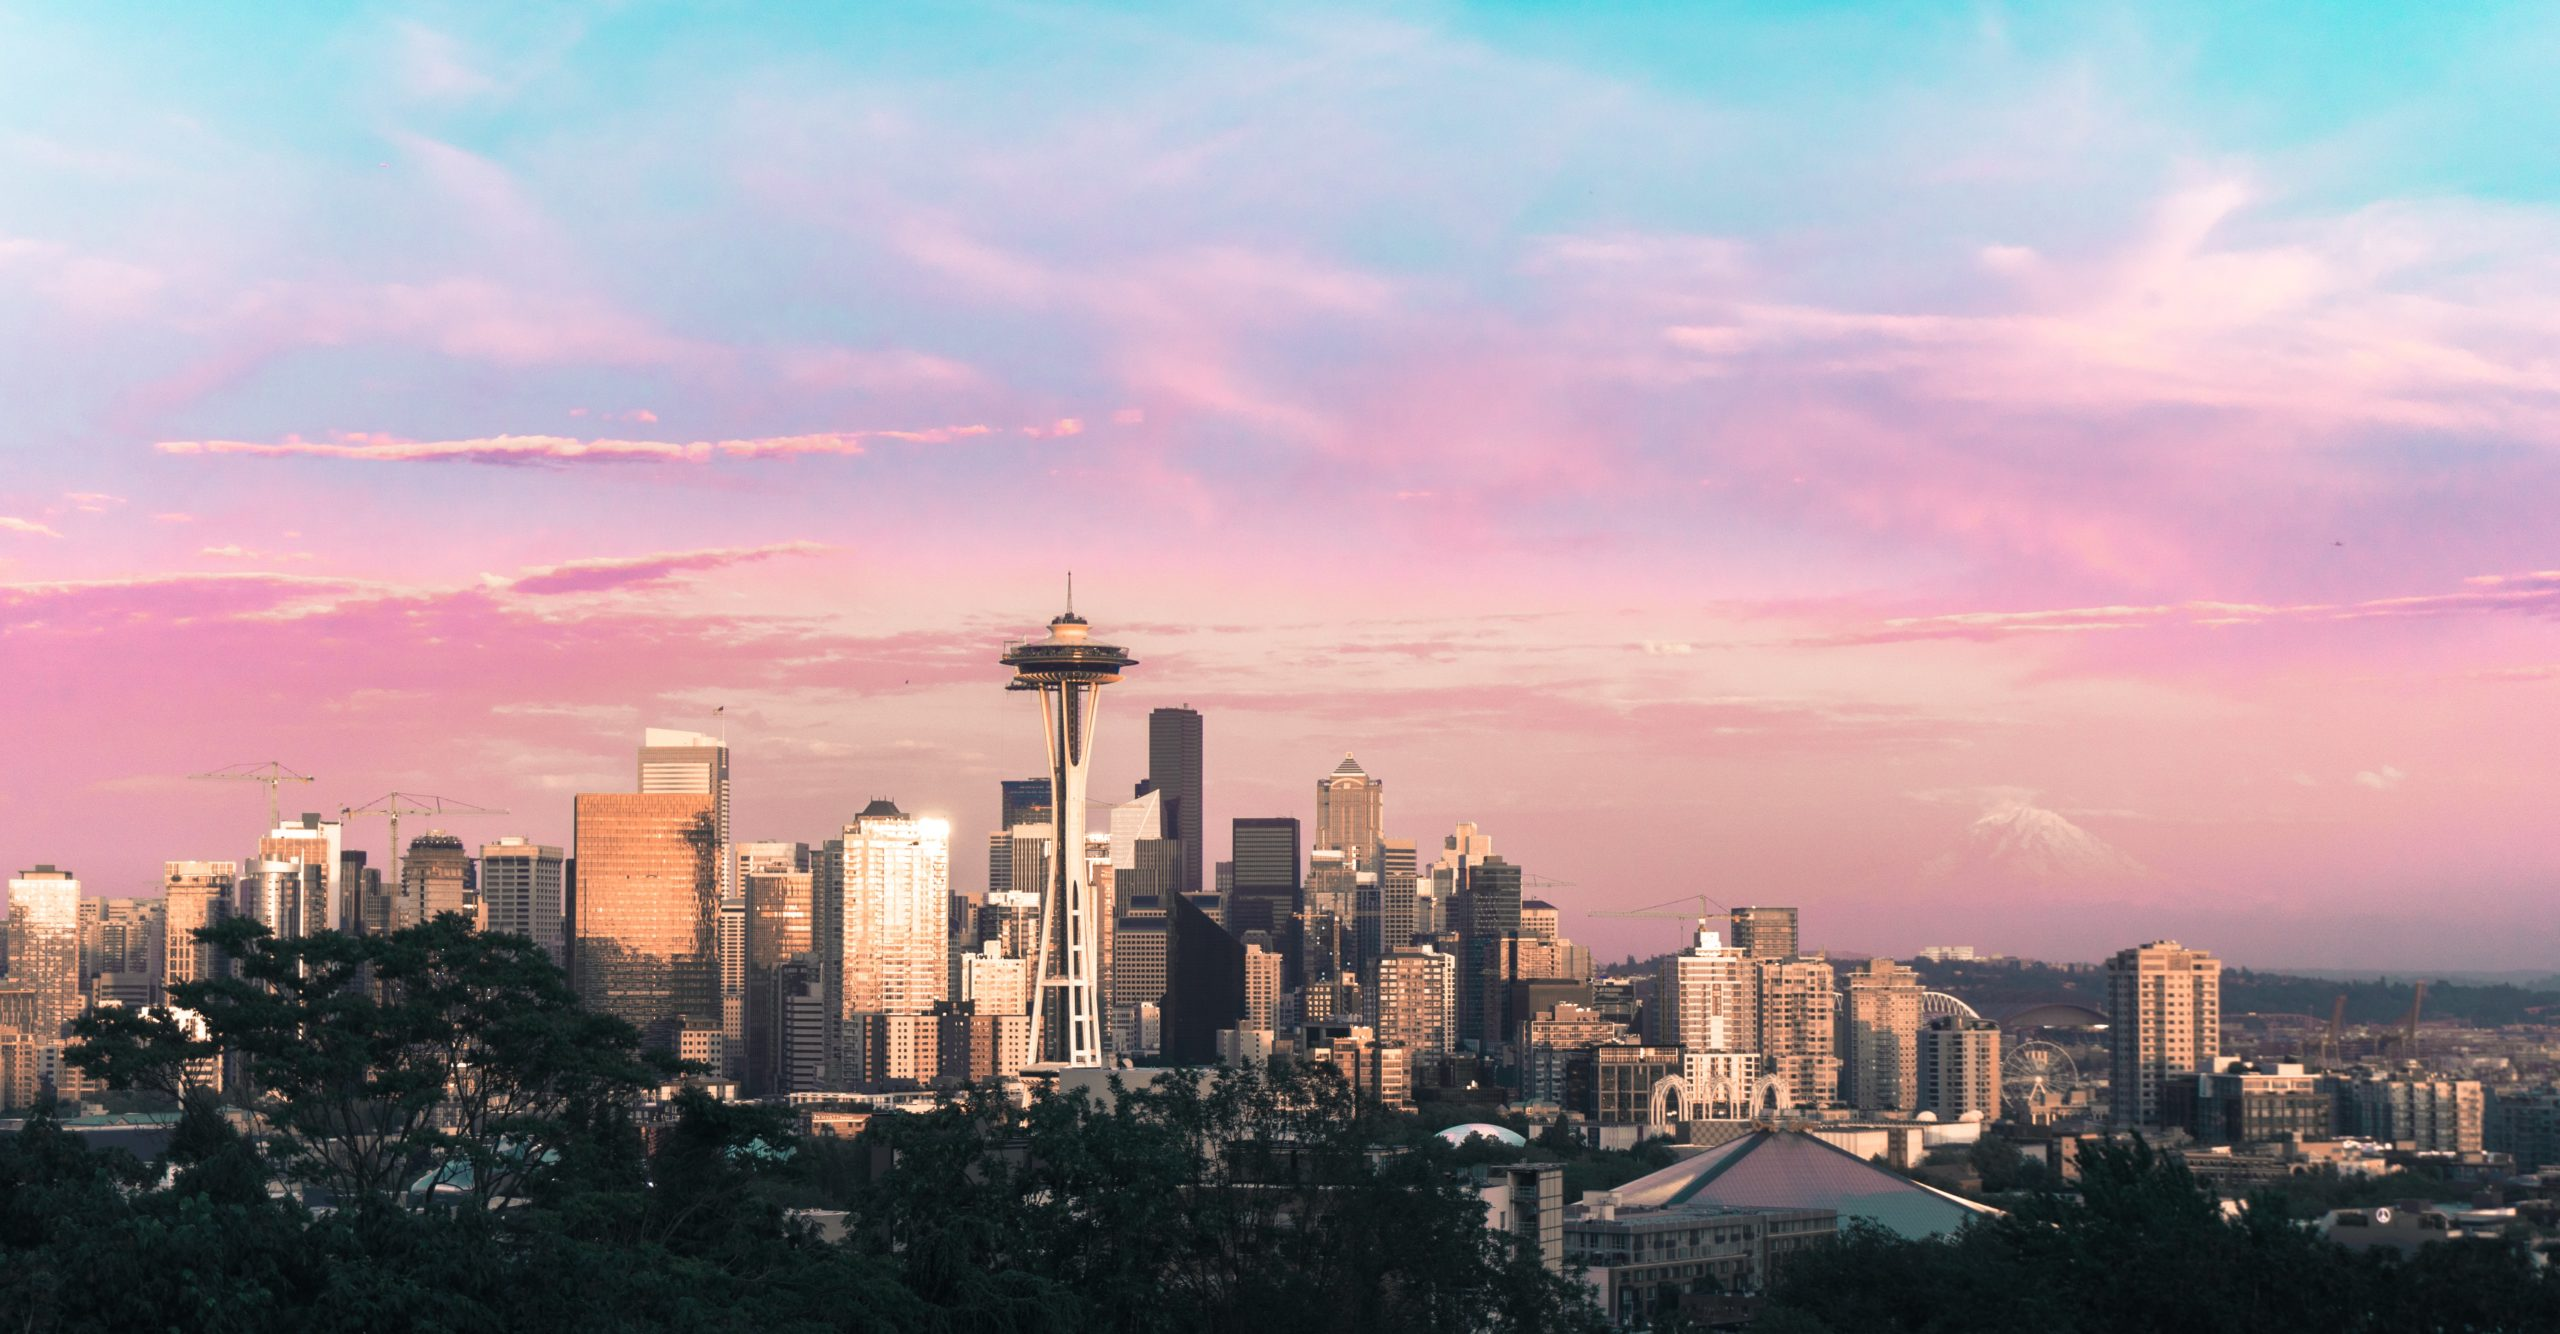 Full-Time Nanny Needed in Seattle for 5-Month-Old Girl! $65-$80K/yr + BENEFITS + HOUSING!!! Open to All U.S. Candidates!!